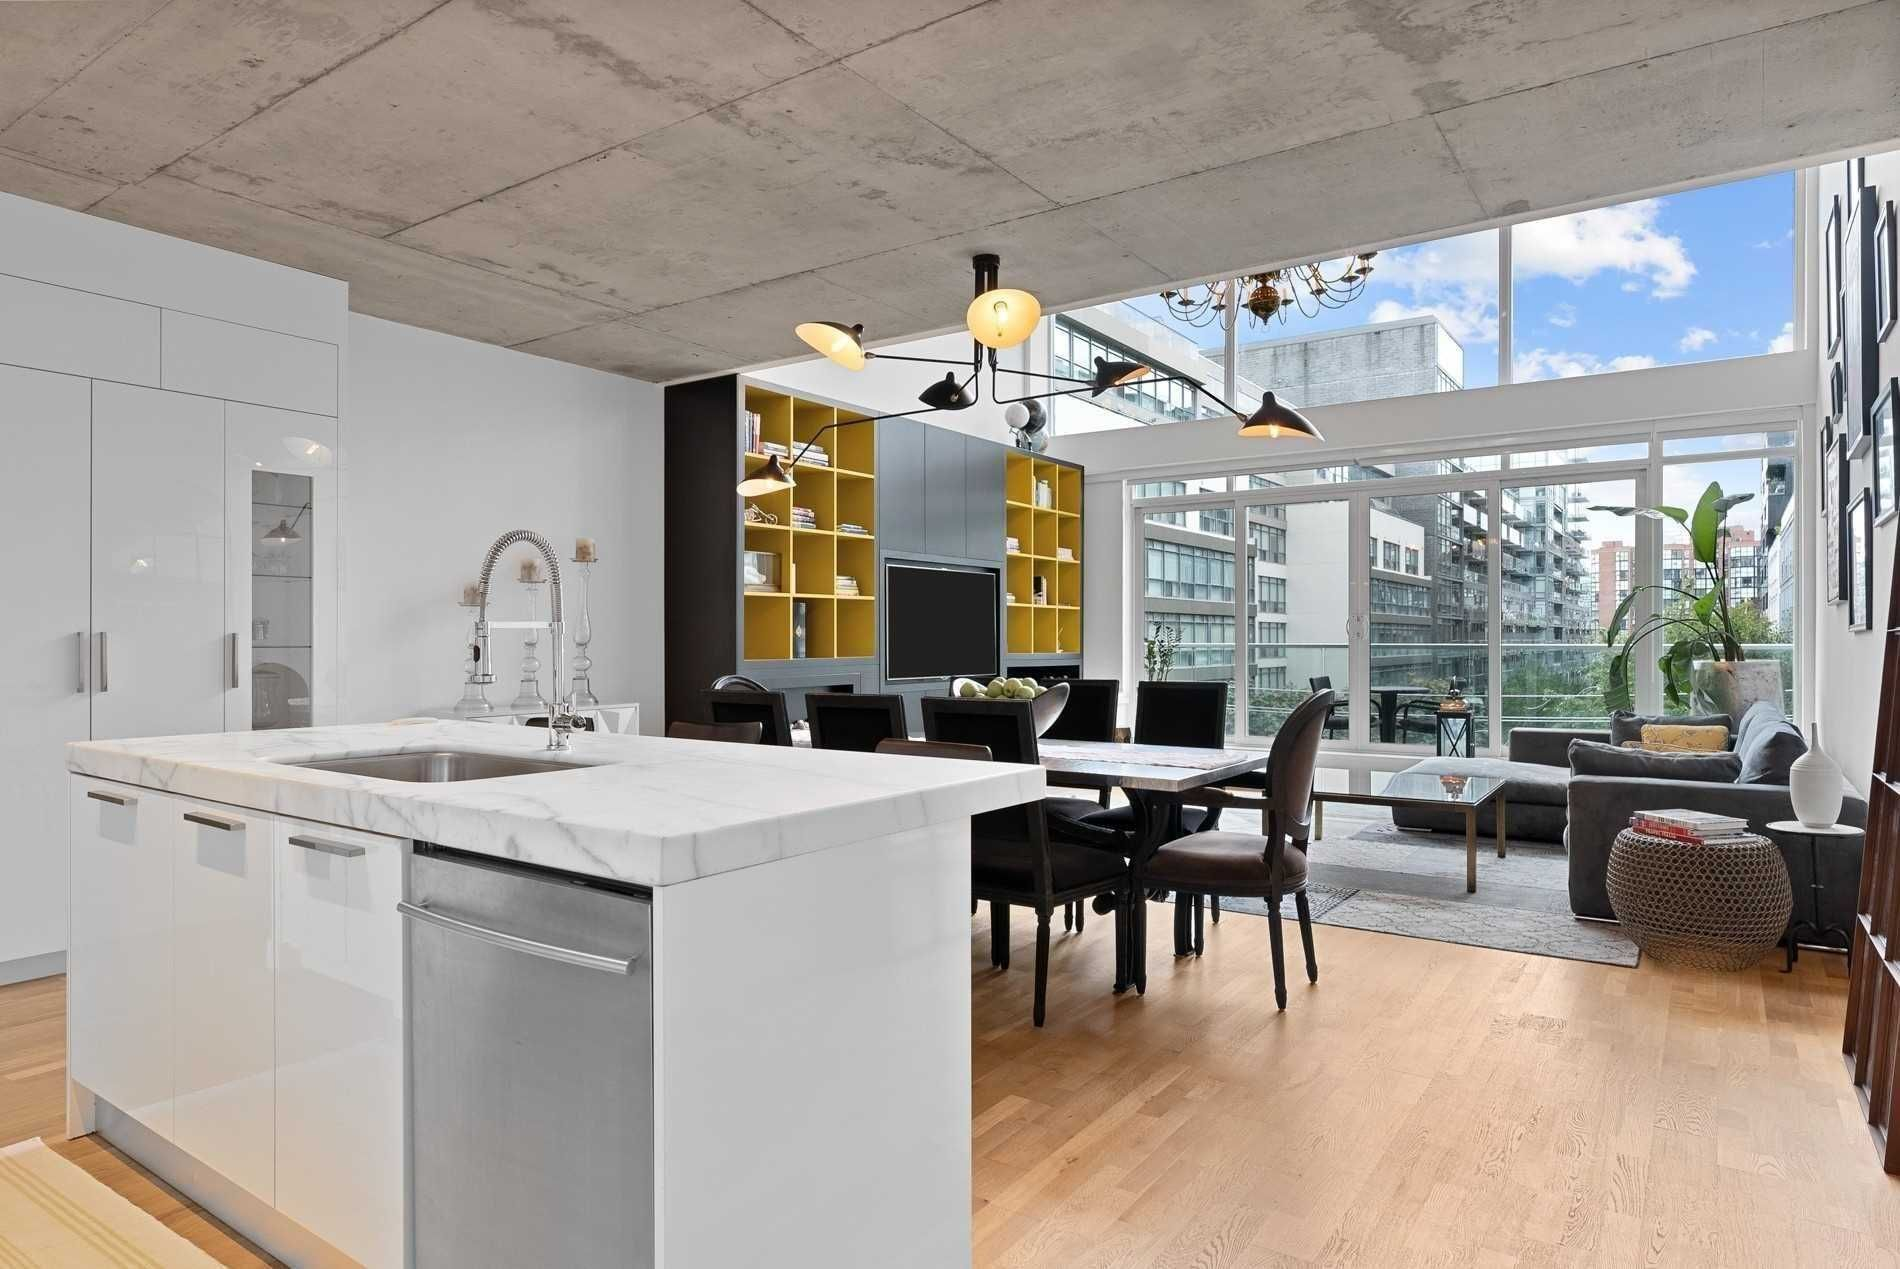 75 Portland St, unit 504 for rent in King West - image #1